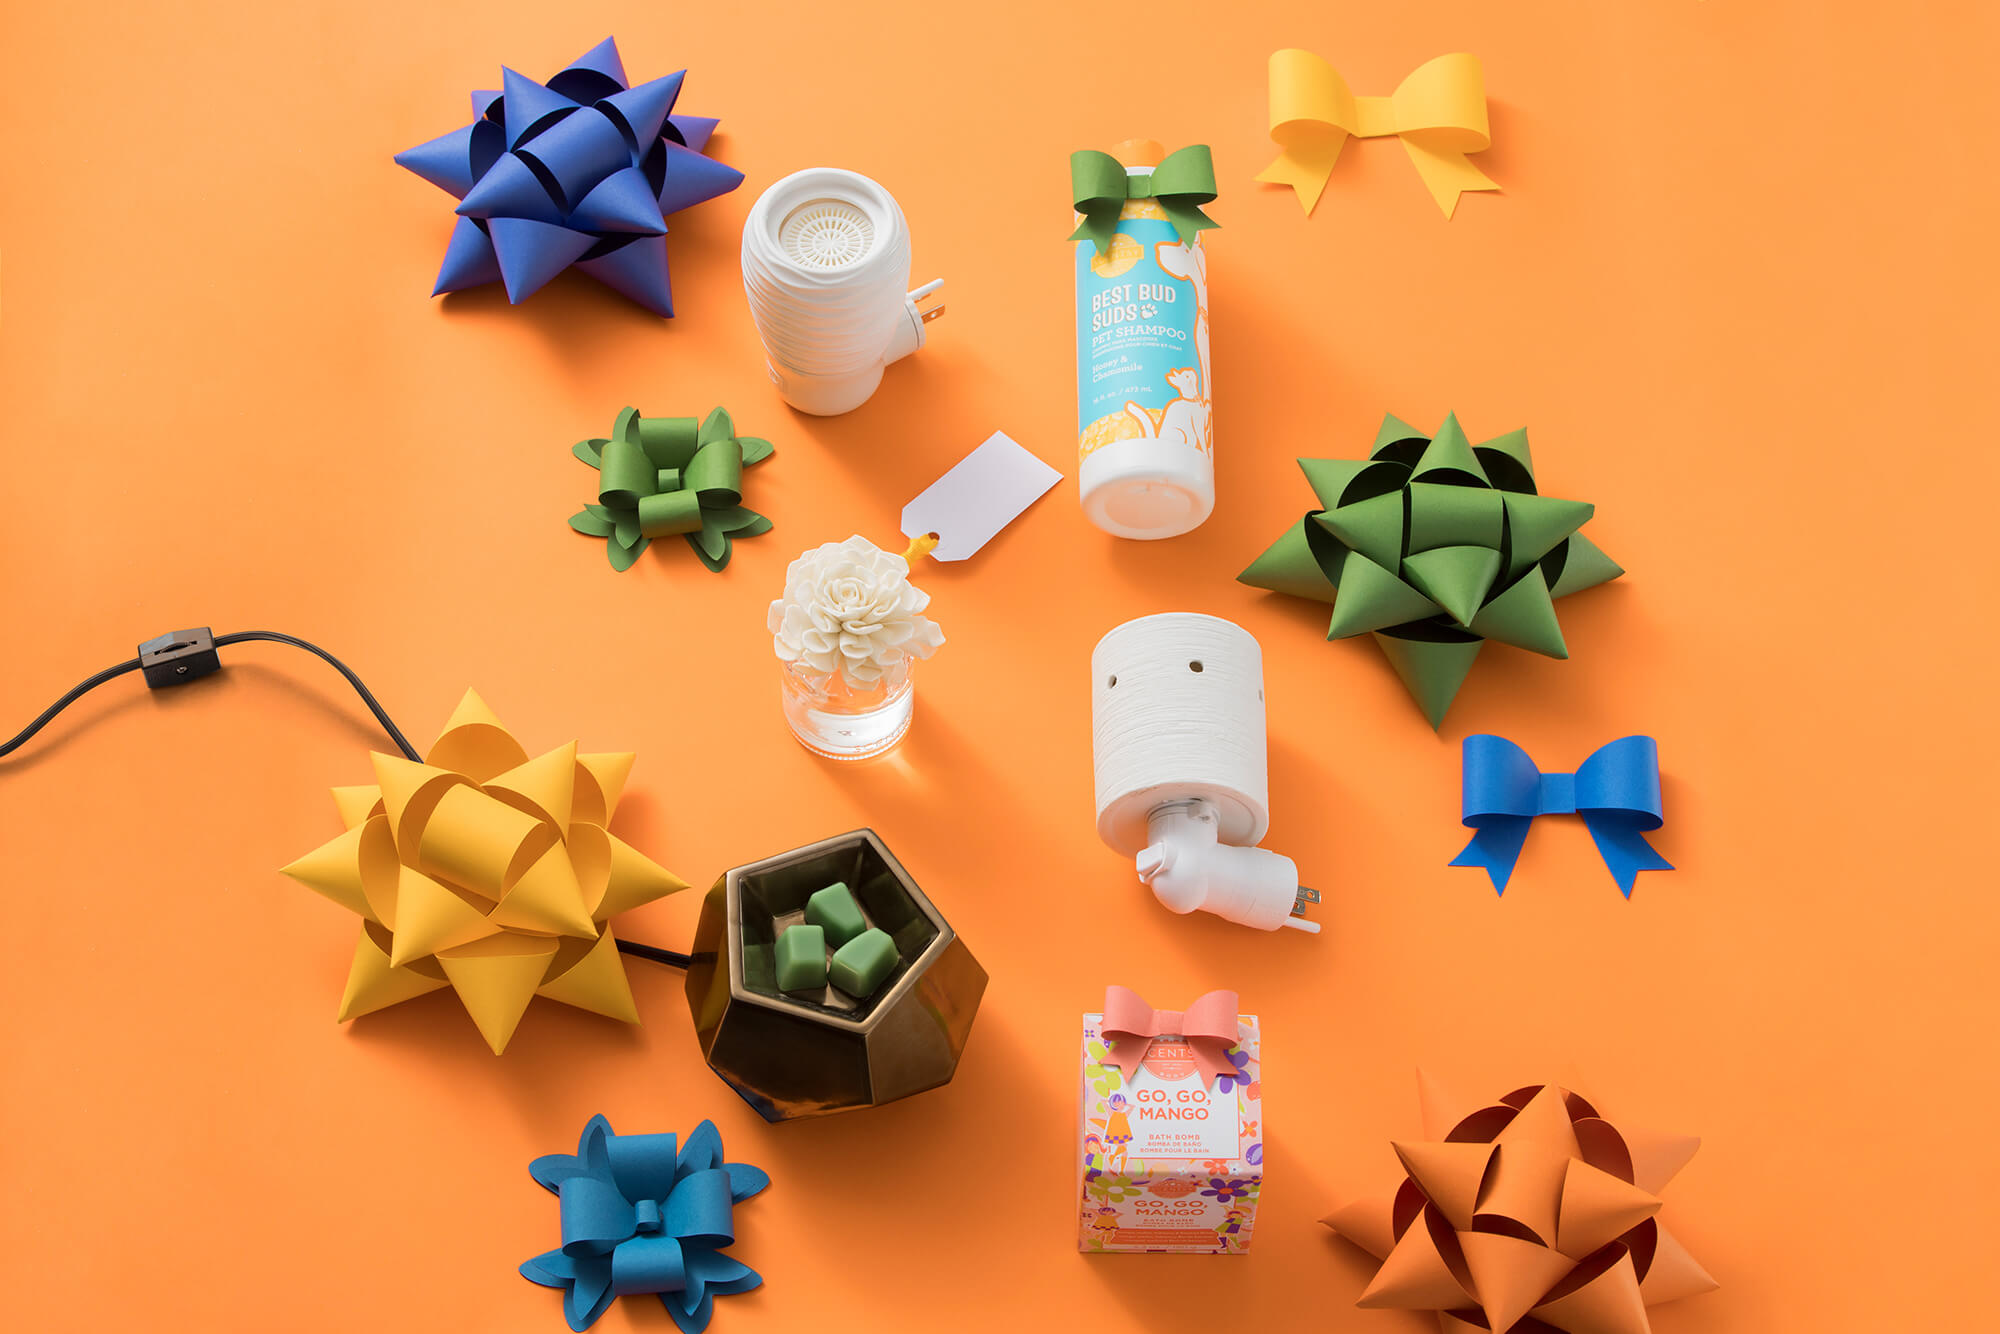 Under $25 Scentsy products featuring - Spin Wall Fan Diffuser, Honey & Chamomile Best Bud Suds Pet Shampoo, Luna Fragrance Flower, Etched Core Mini Warmer, Midnight Copper Warmer, and Go, Go, Mango Bath Bomb